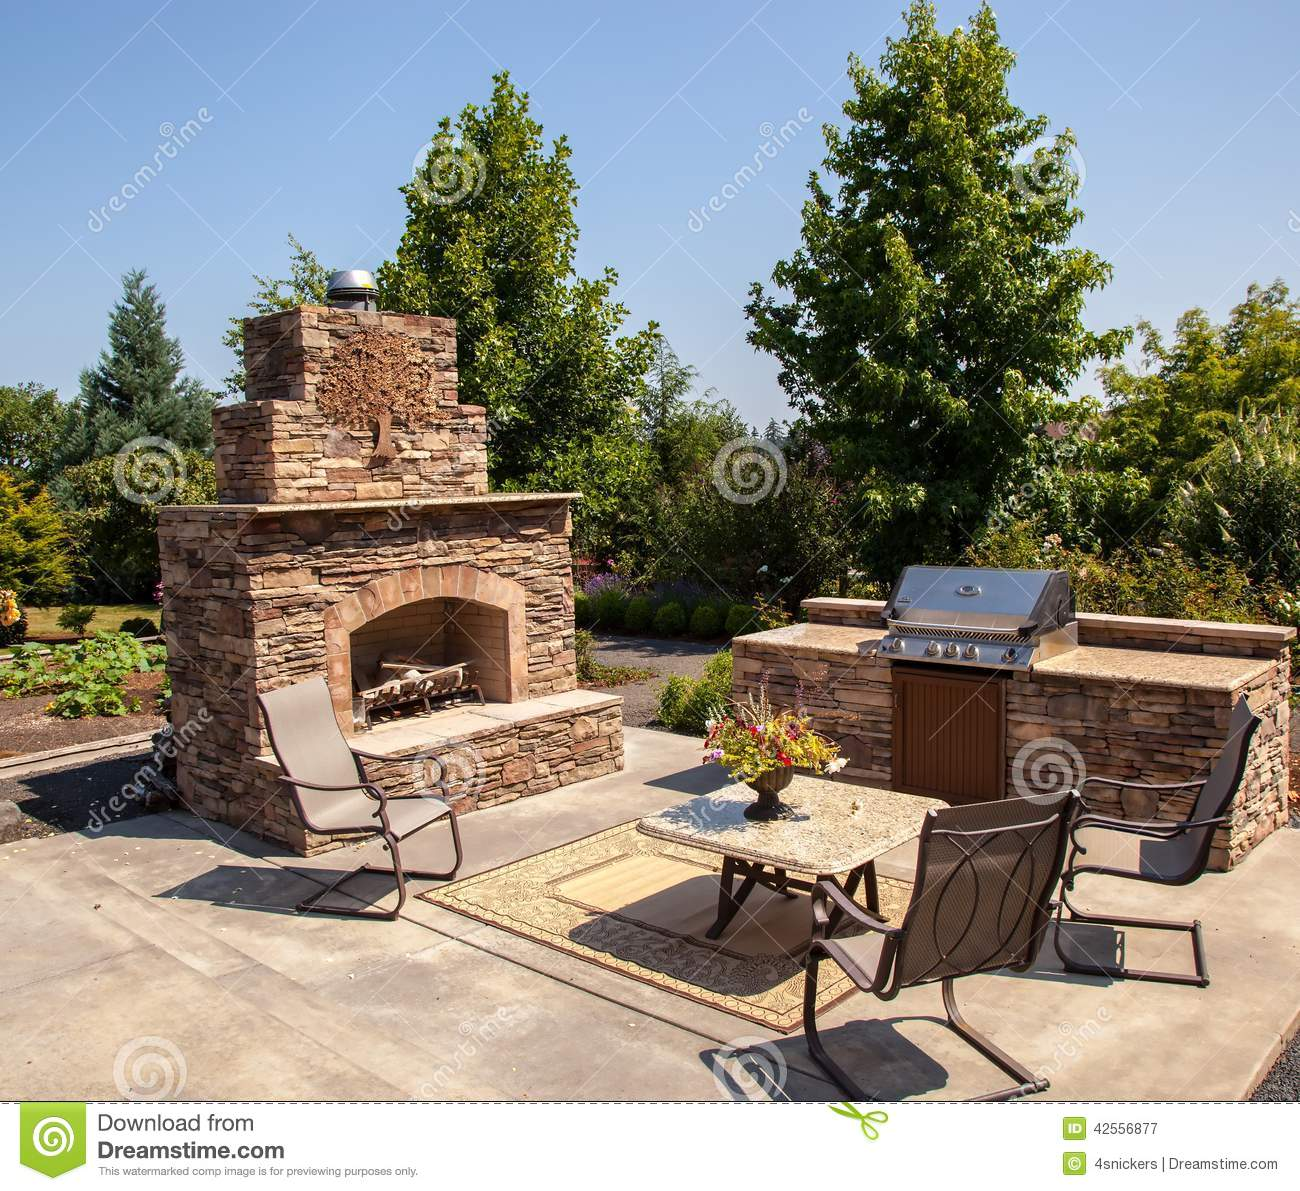 Outdoor fireplace and kitchen area summer stock photo for Outdoor cooking area and fireplace